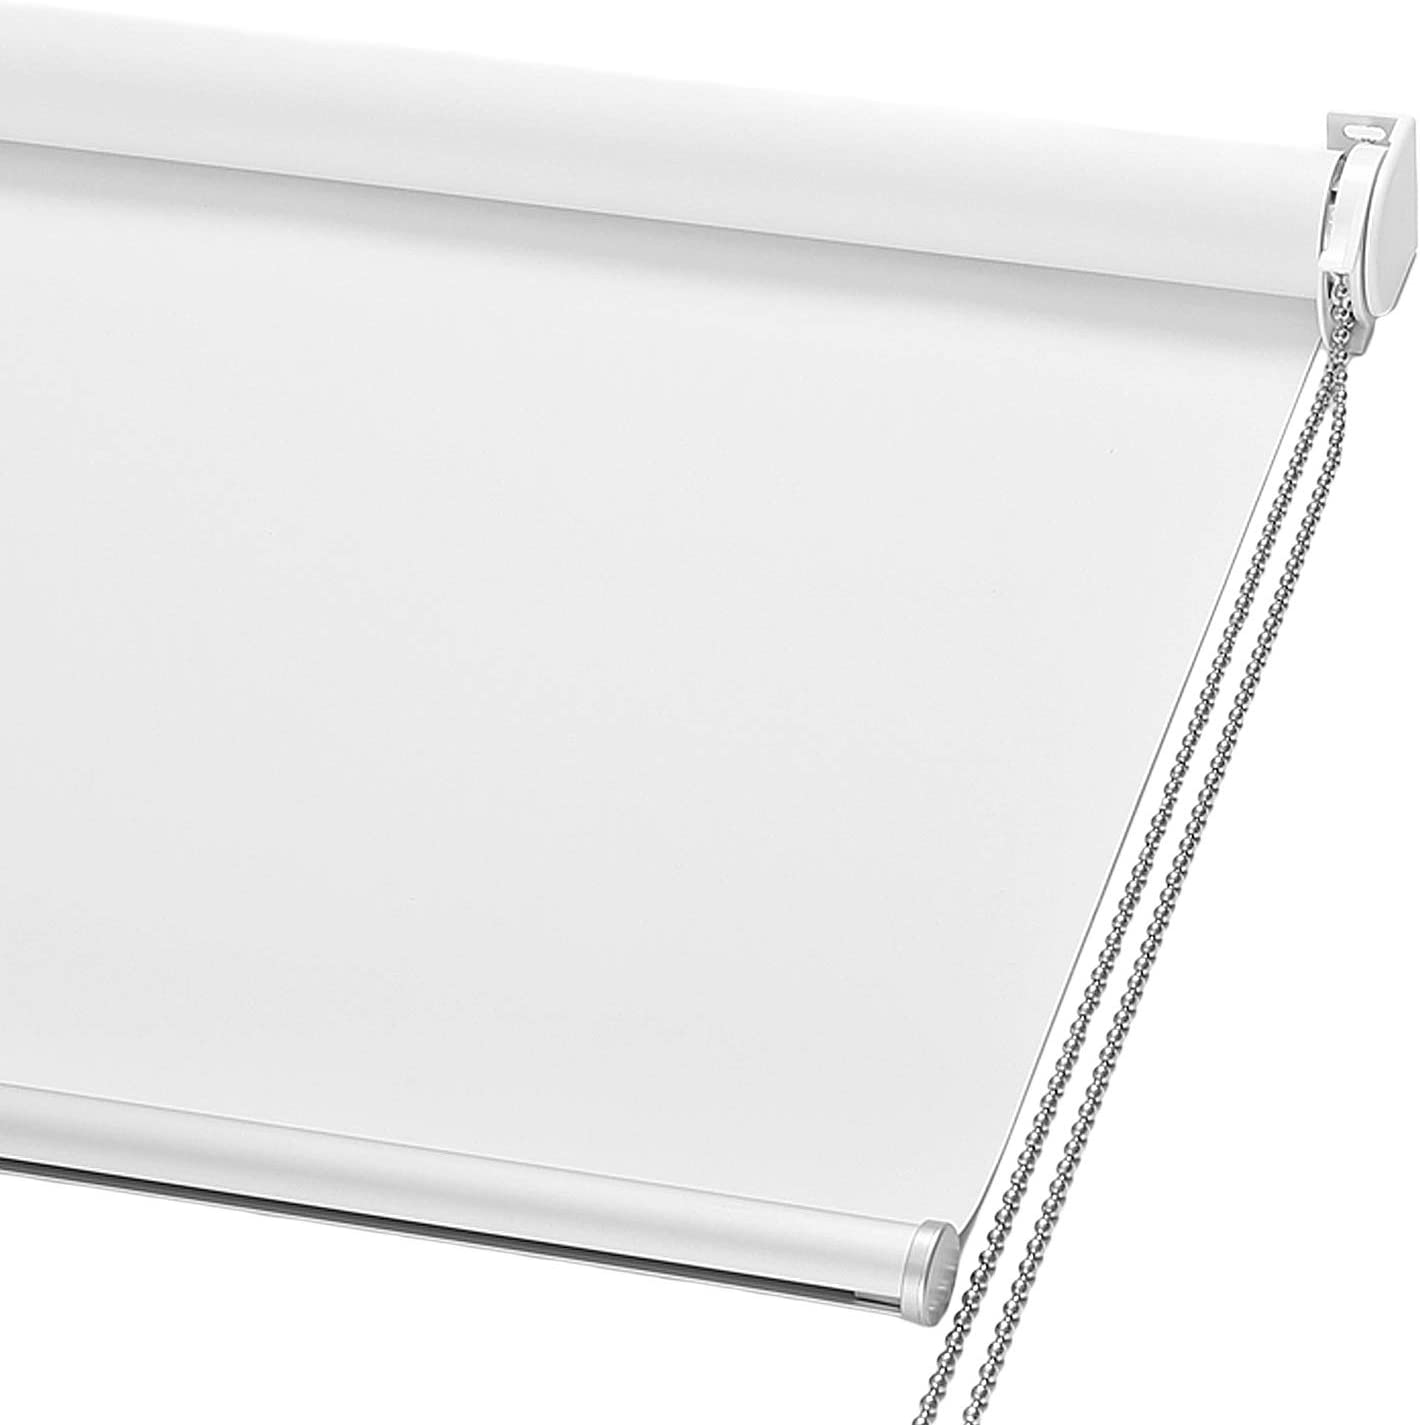 """ChrisDowa 100% Blackout Roller Shade, Window Blind with Thermal Insulated, UV Protection Fabric. Total Blackout Roller Blind for Office and Home. Easy to Install (24"""" W x 72"""" H, White)"""